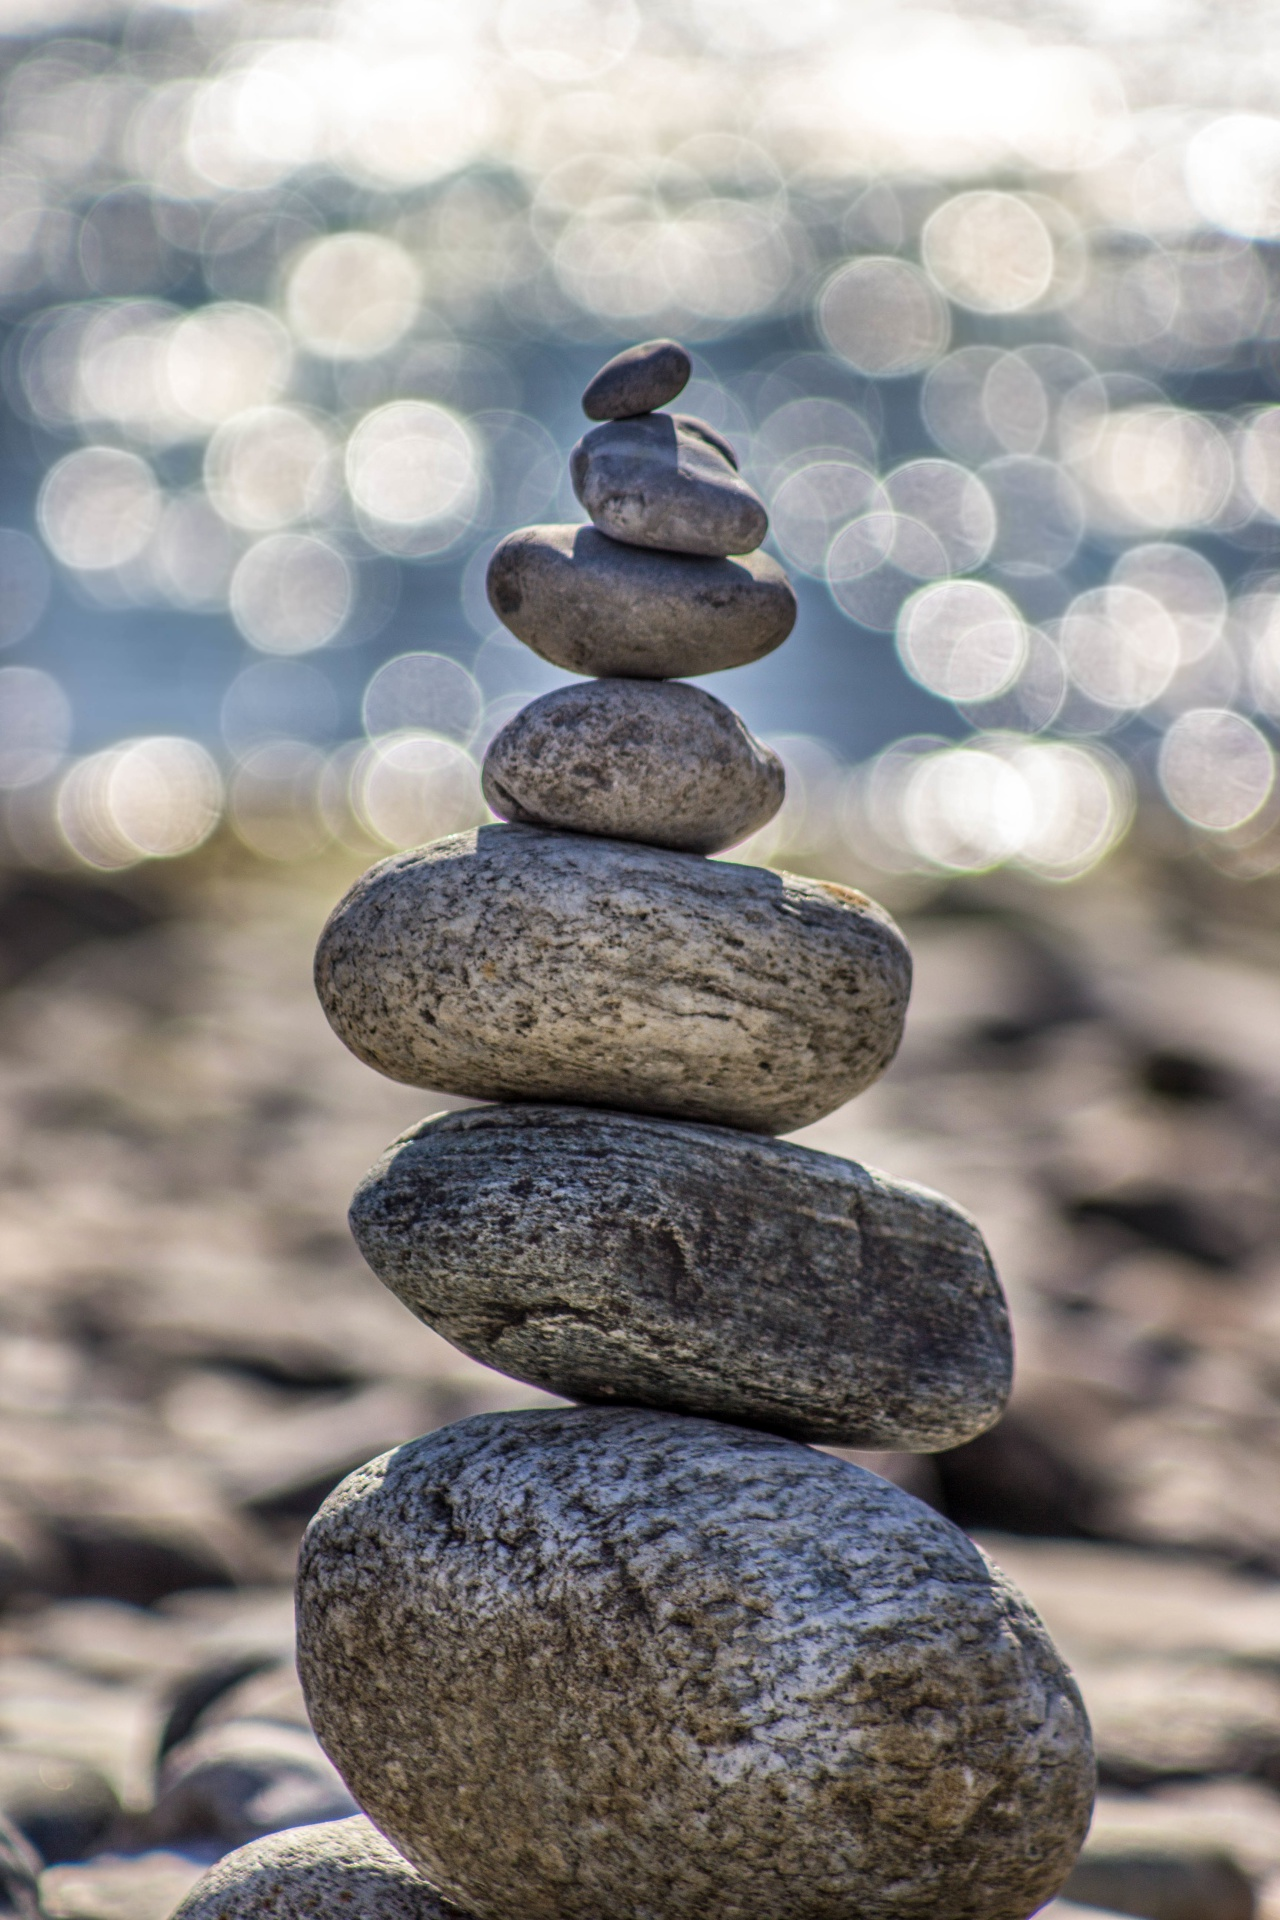 naturopathic medicine meditation rocks